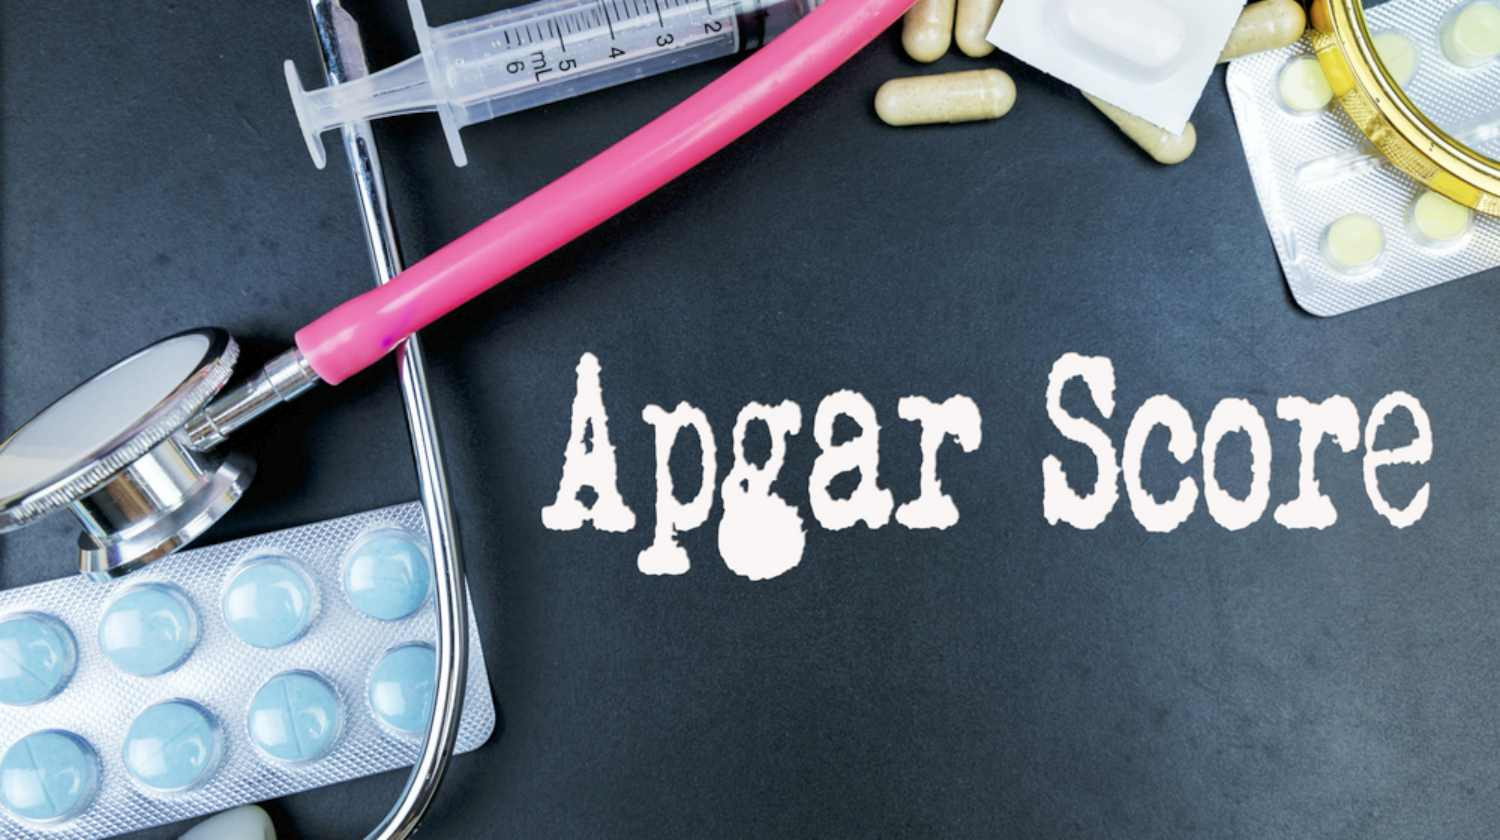 Feature | What Is The Apgar Score Test And What Does It Mean?